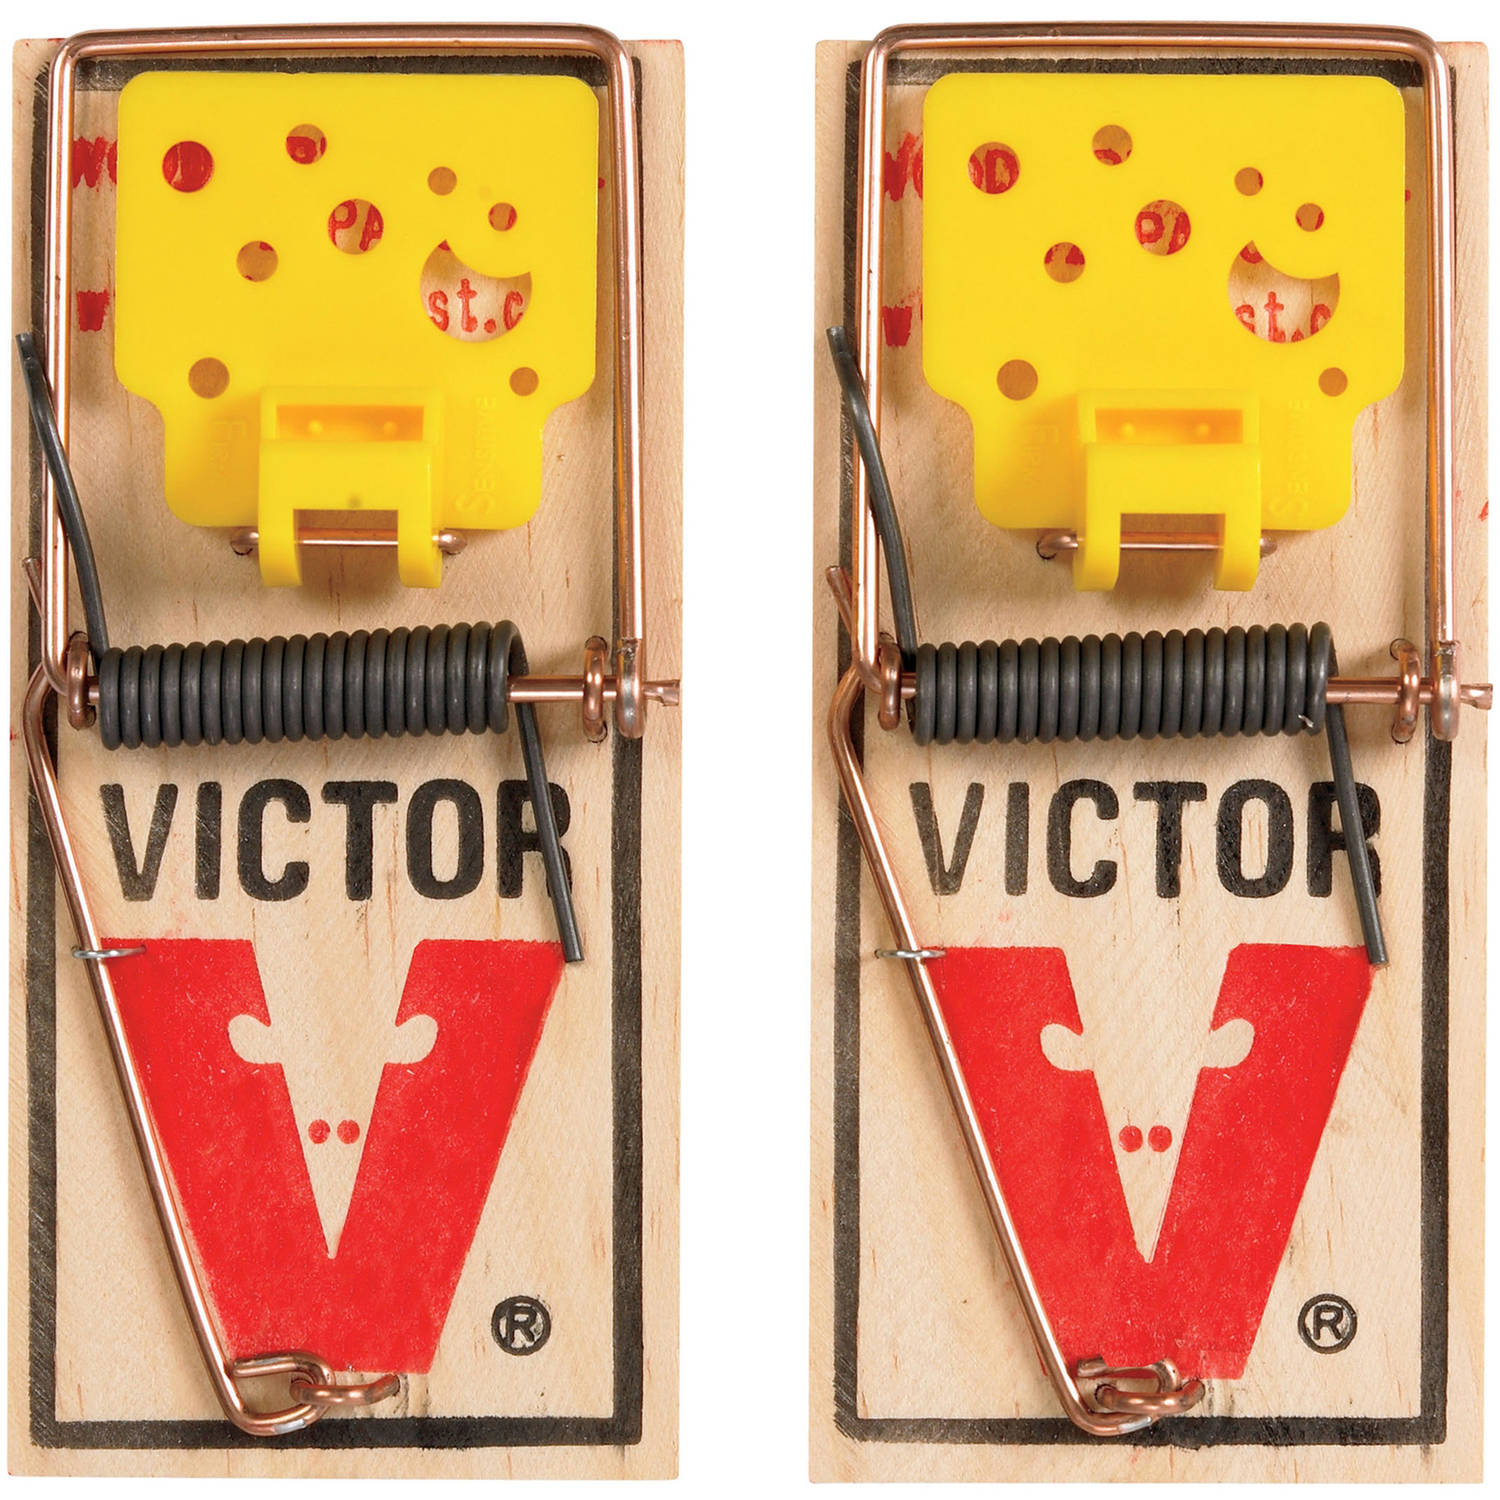 Victor M035 Easy Set Mouse Traps, 2-Count